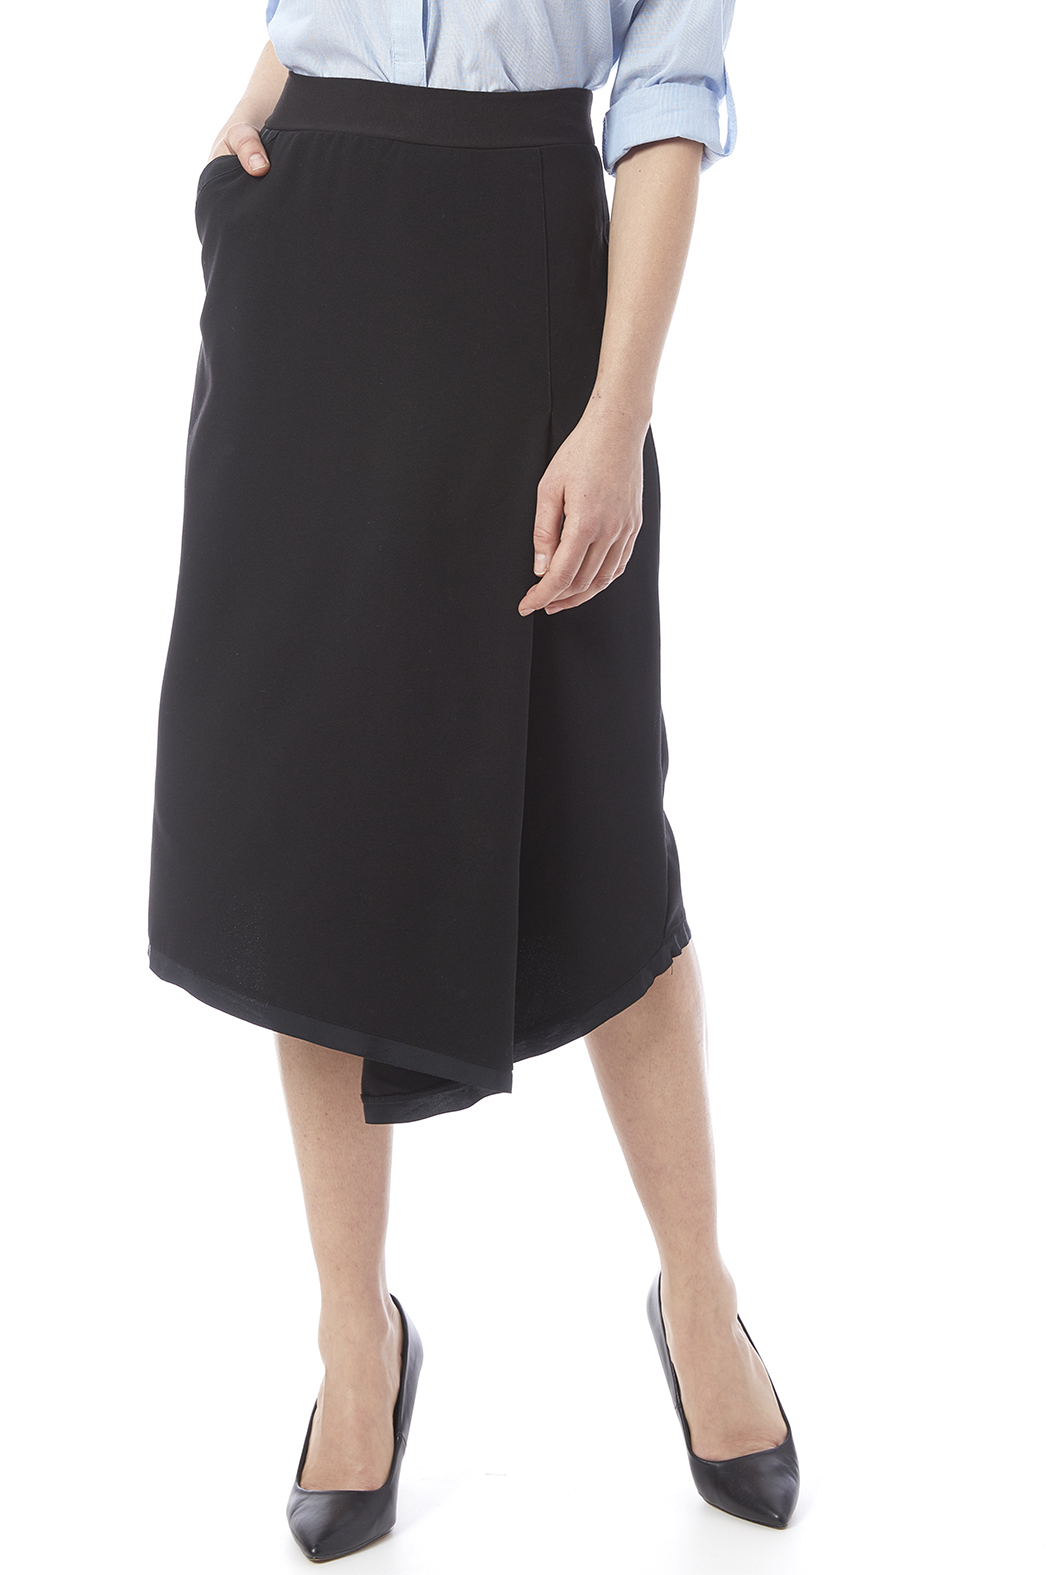 Neesh by D.A.R. Asymmetrical Midi Skirt - Main Image